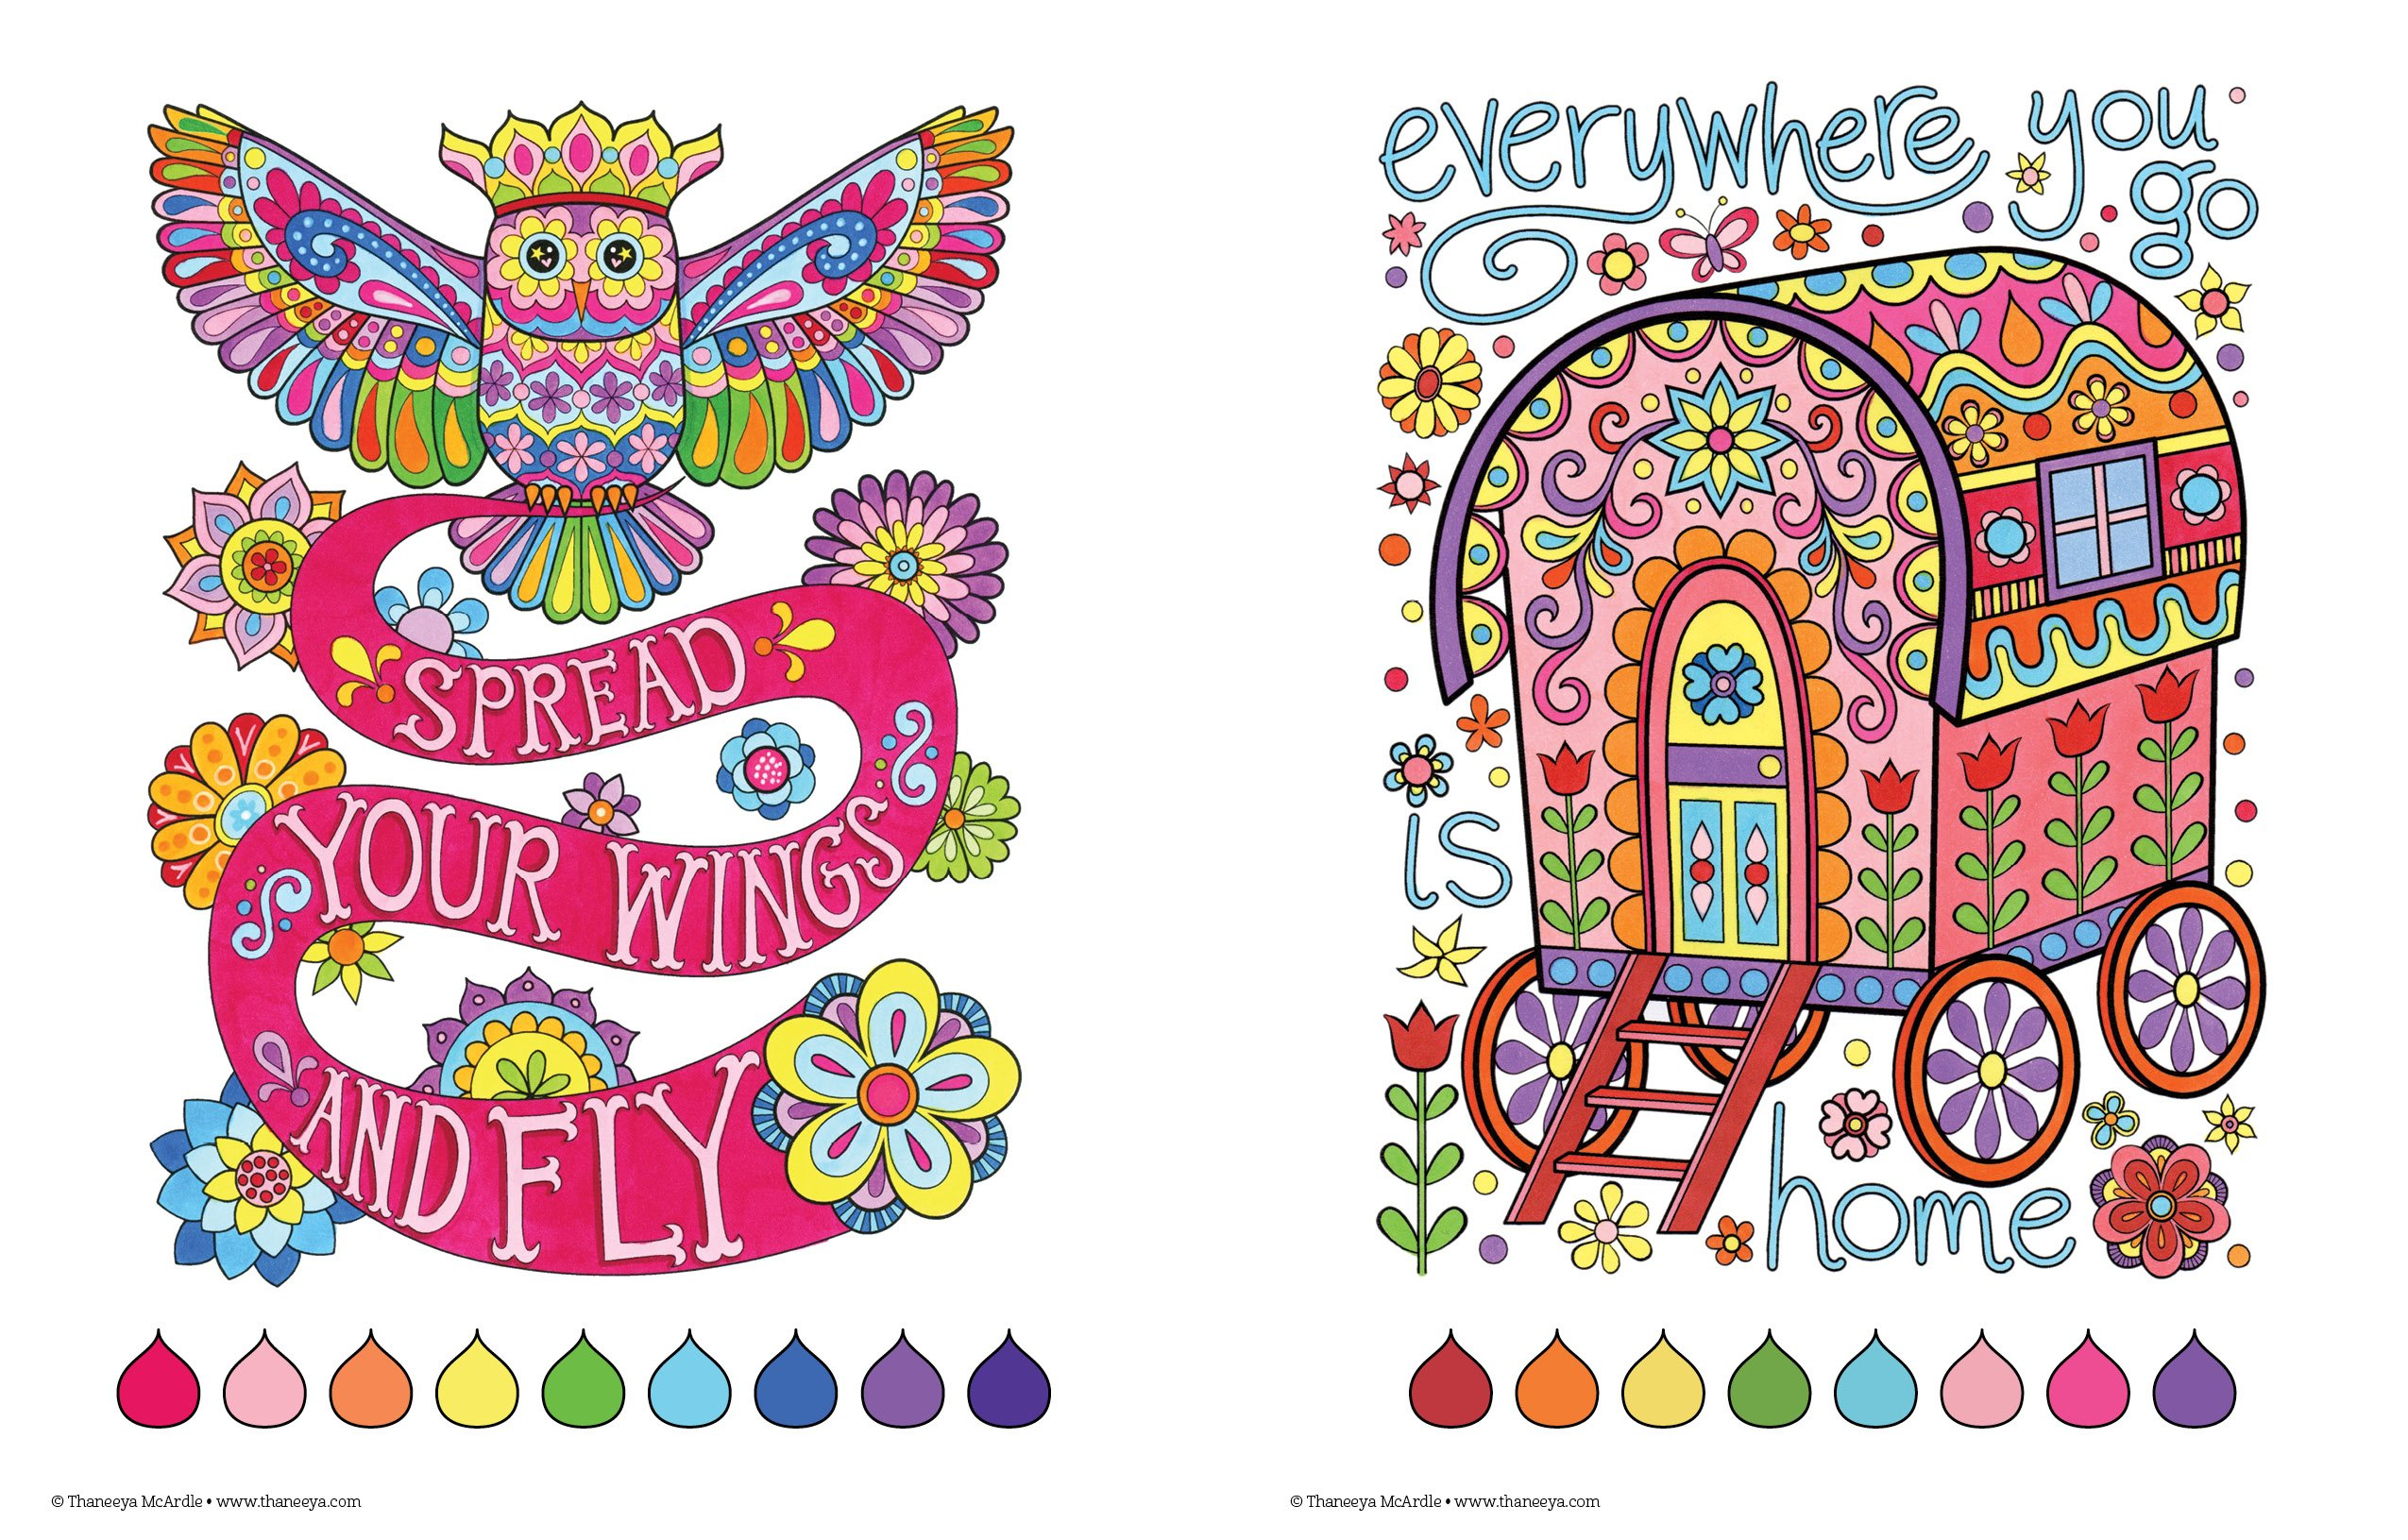 Free spirit coloring book by thaneeya mcardle coloring books by - Amazon Com Free Spirit Coloring Book Coloring Is Fun 0023863055321 Thaneeya Mcardle Books